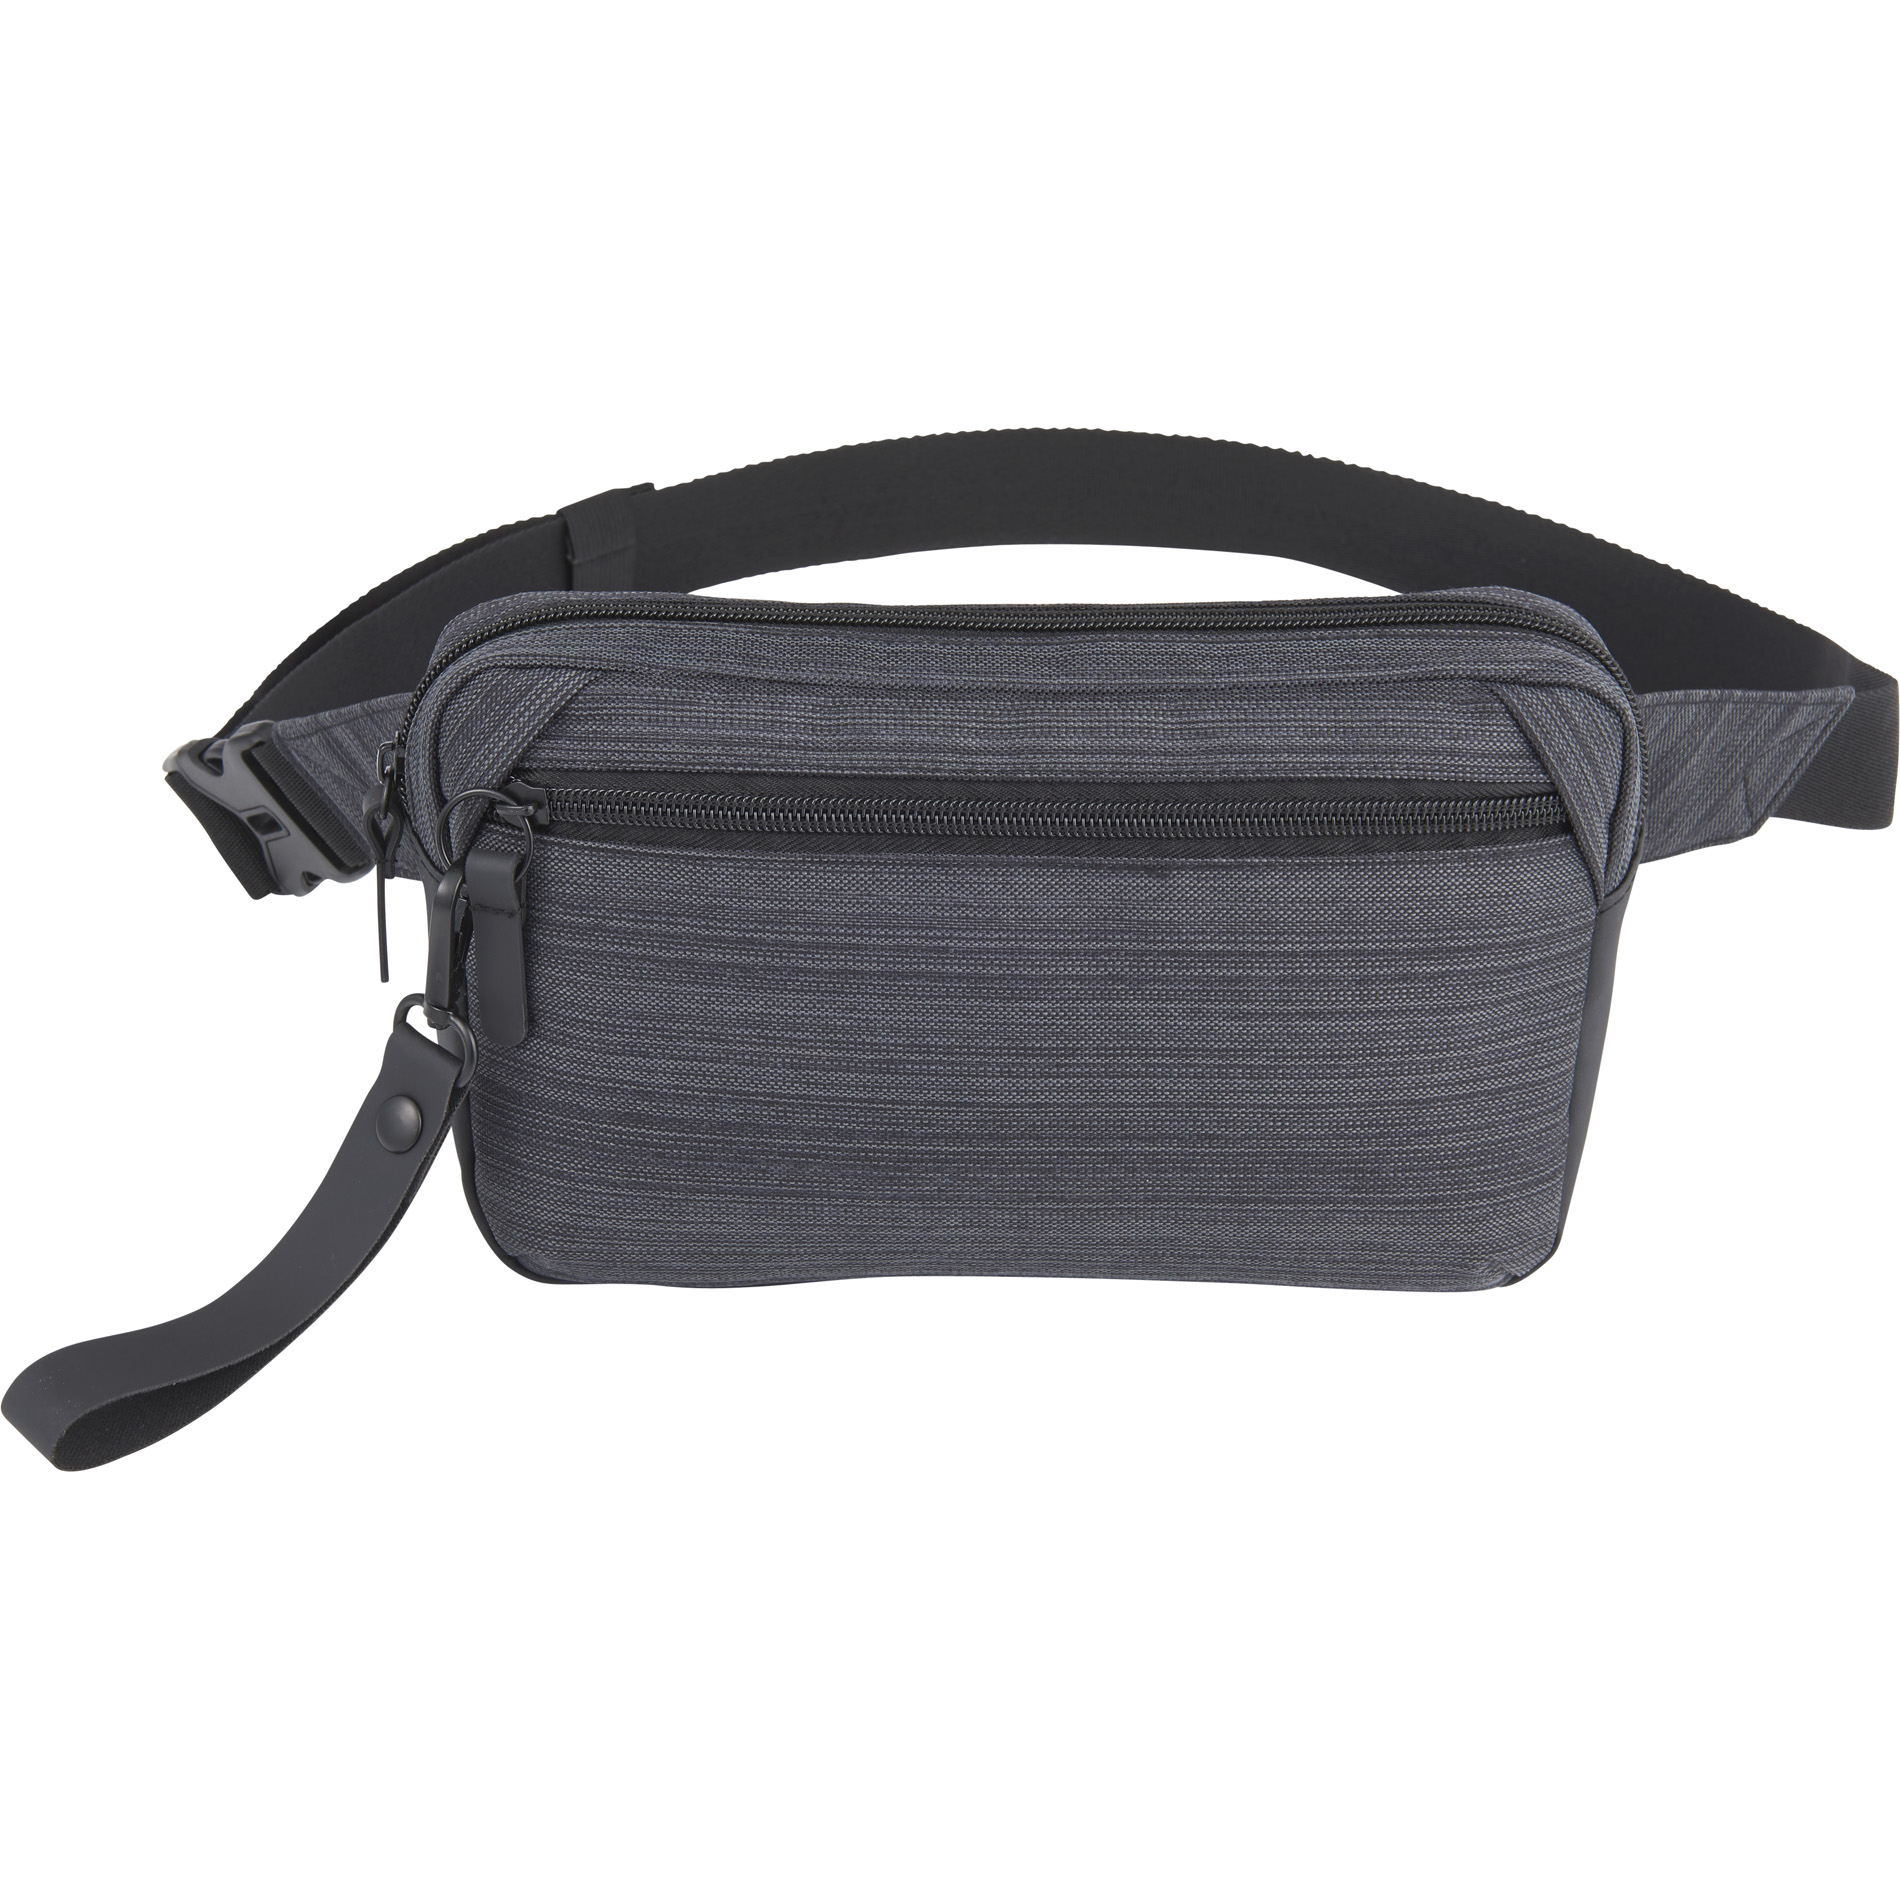 LEEDS 3750-24 - NBN Whitby Waist Pack